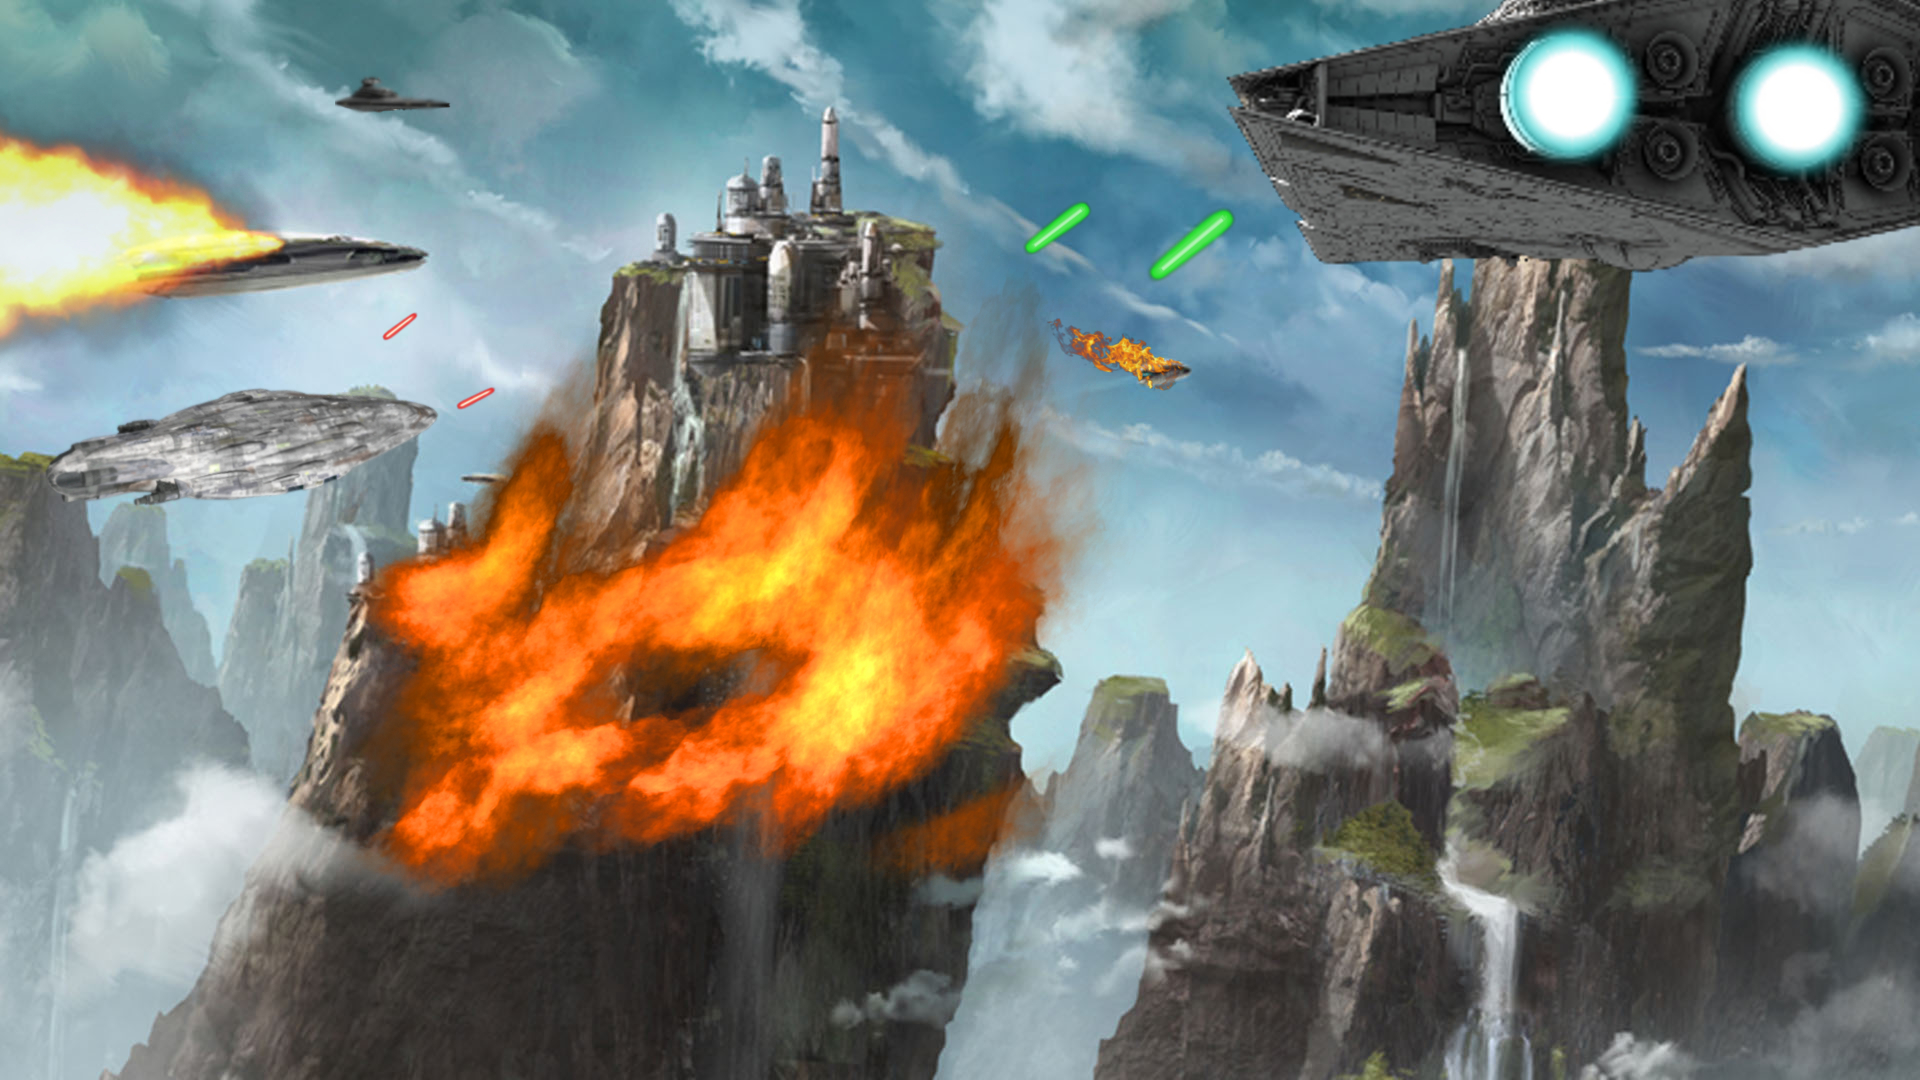 what do you think about makeb news star wars epic